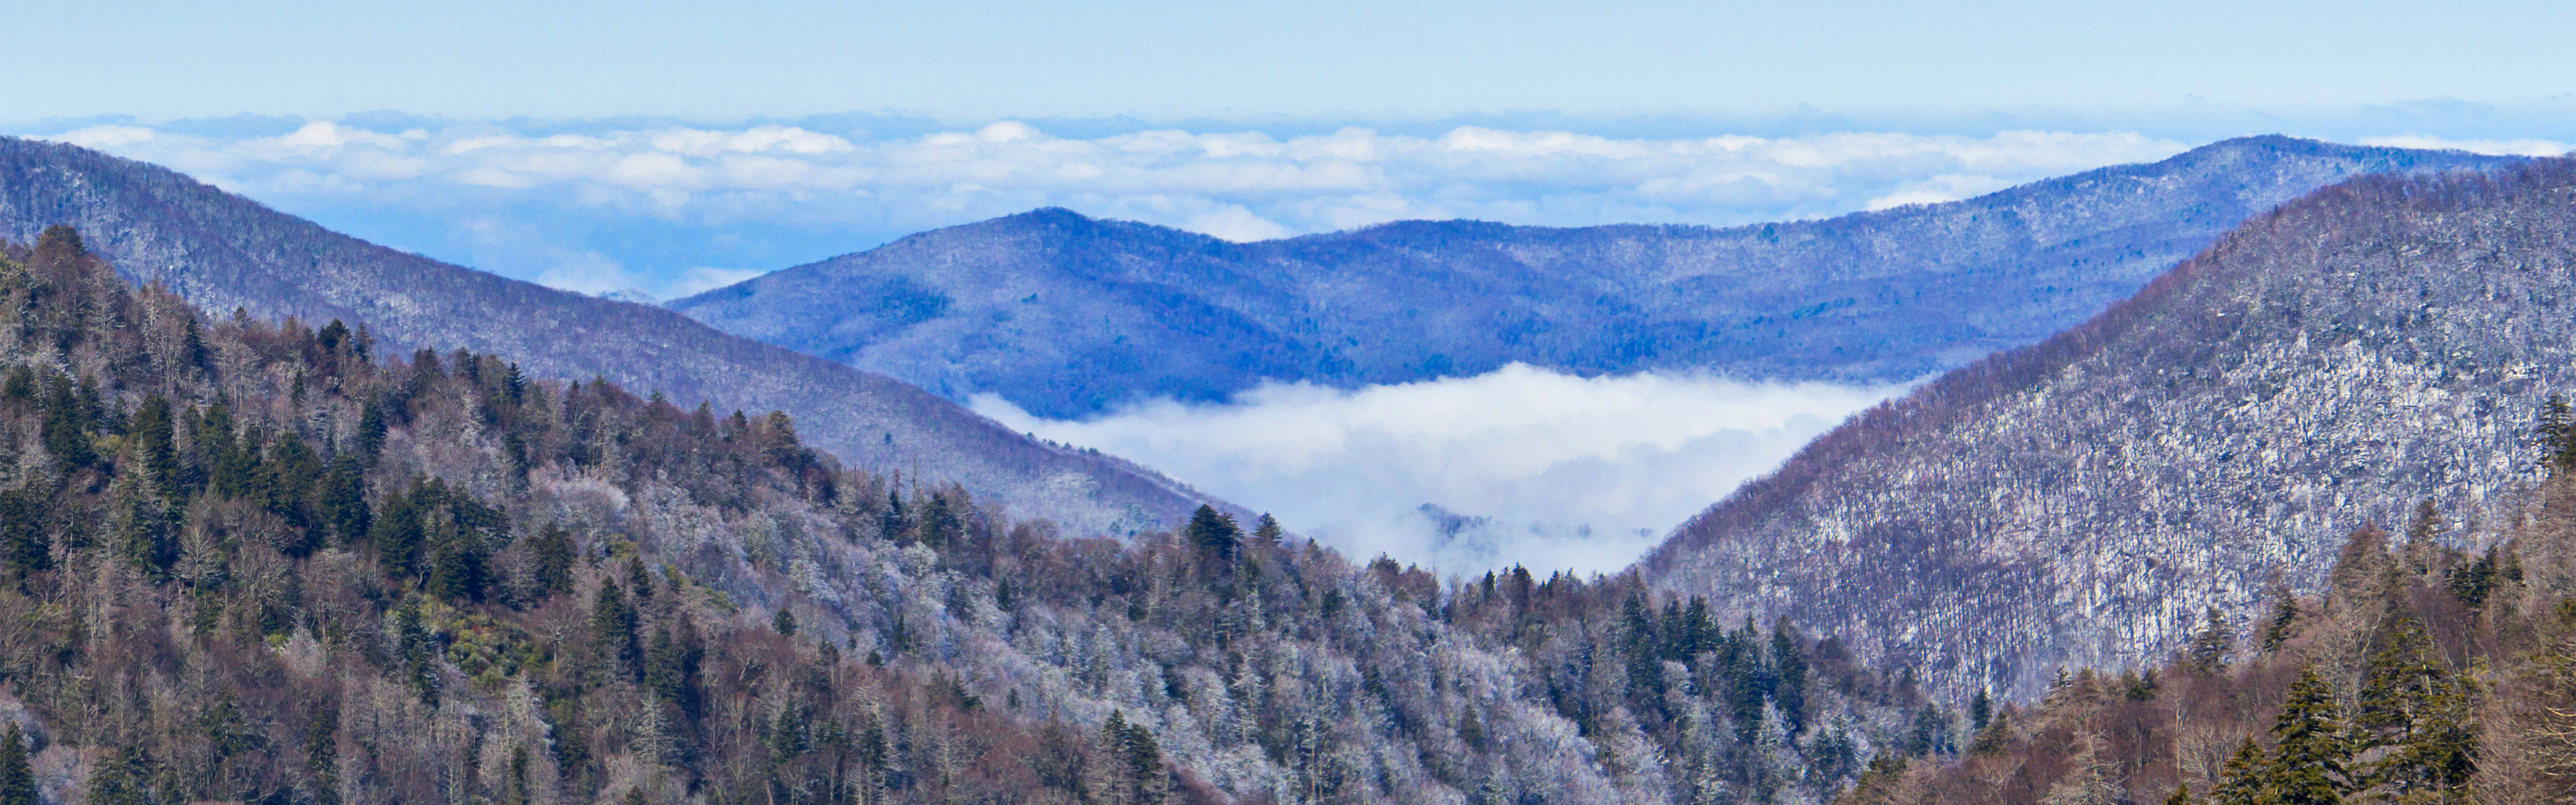 westgate smoky mountain resort rebuilds after wildfires